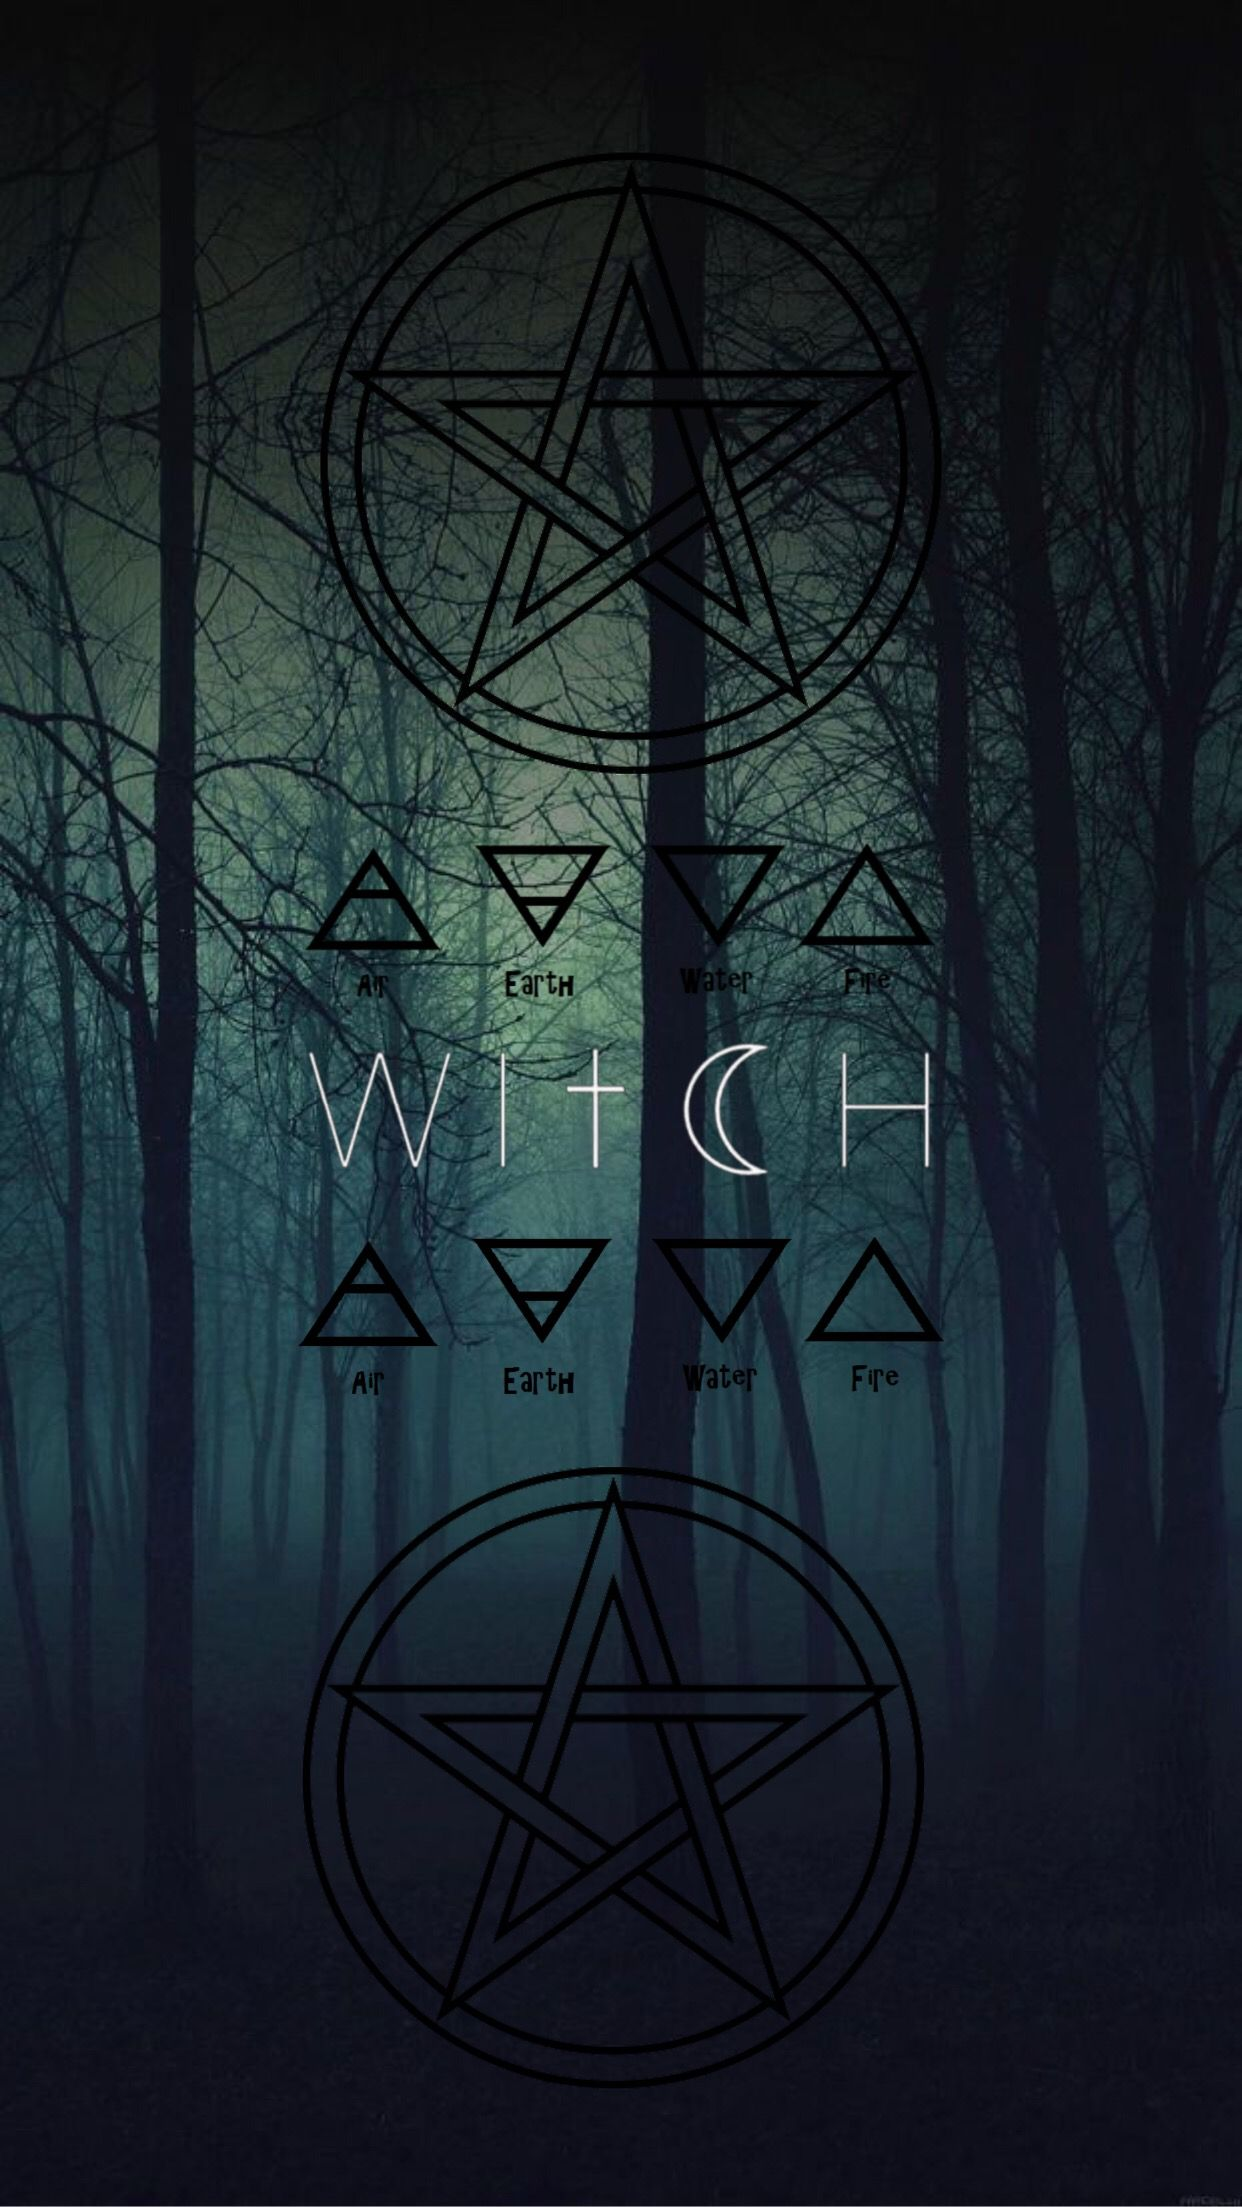 Freetoedit Witch Wicca Wallpaper Aesthetic Remixit Witch Wallpaper Witchy Wallpaper Wiccan Wallpaper